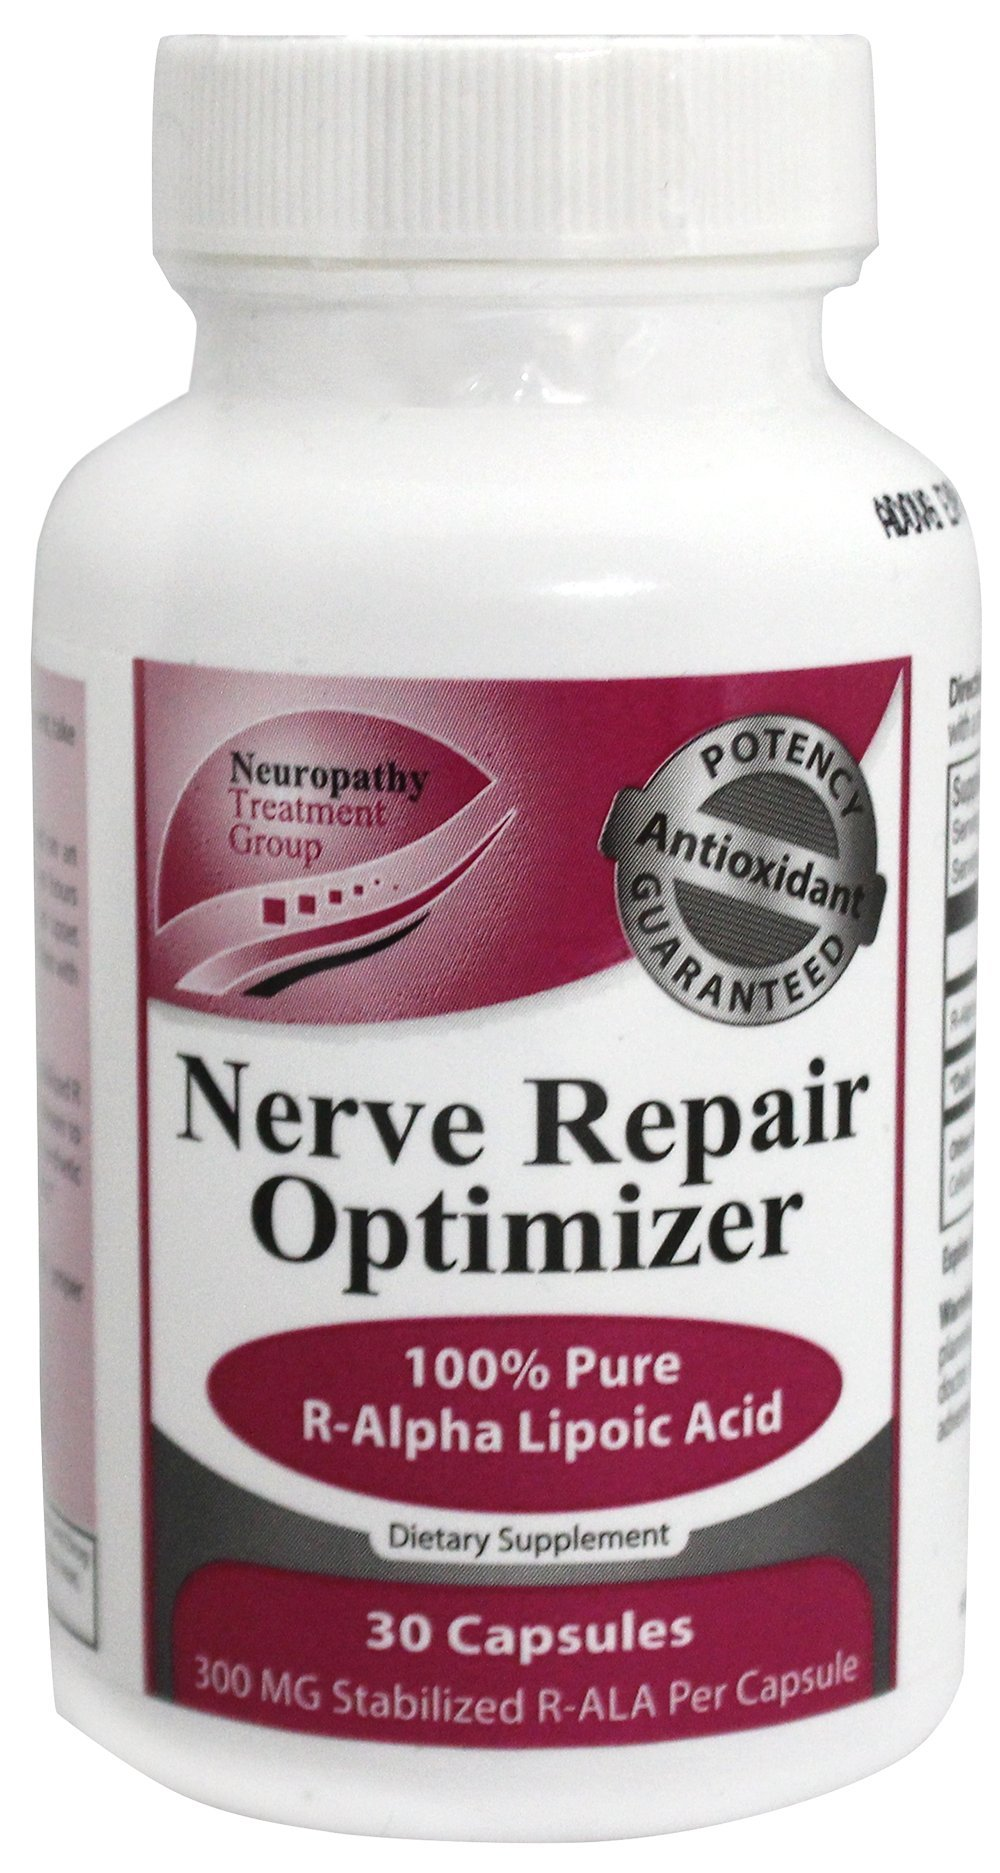 Nerve Renew - All-Natural Nerve Renew Repair Optimizer with Stabilized R-Lipoic Acid - Absorbs Fast - Alternative Nerve Pain Treatment - One Month Supply (30 Count)